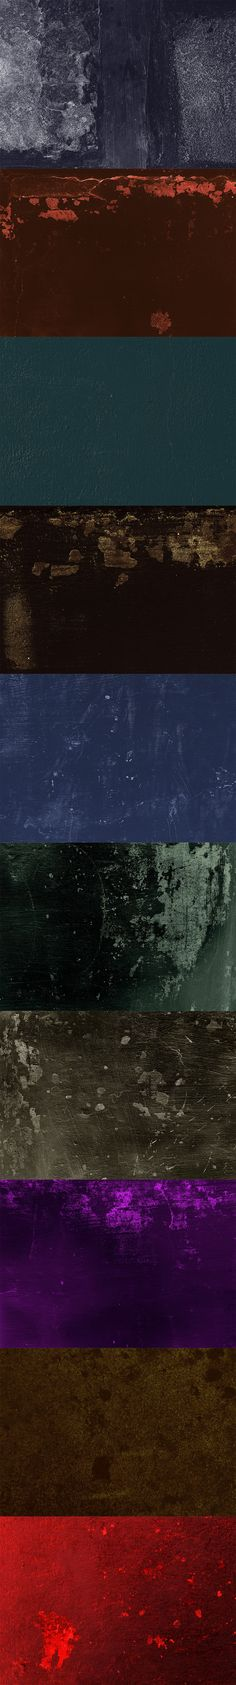 Friends! Add some stunning dramatic effect to your design by using these Dramatic Color Free Grunge Textures. These grunge backgrounds would be perfect for  flashy or grunge flyers, photos, posters, etc.